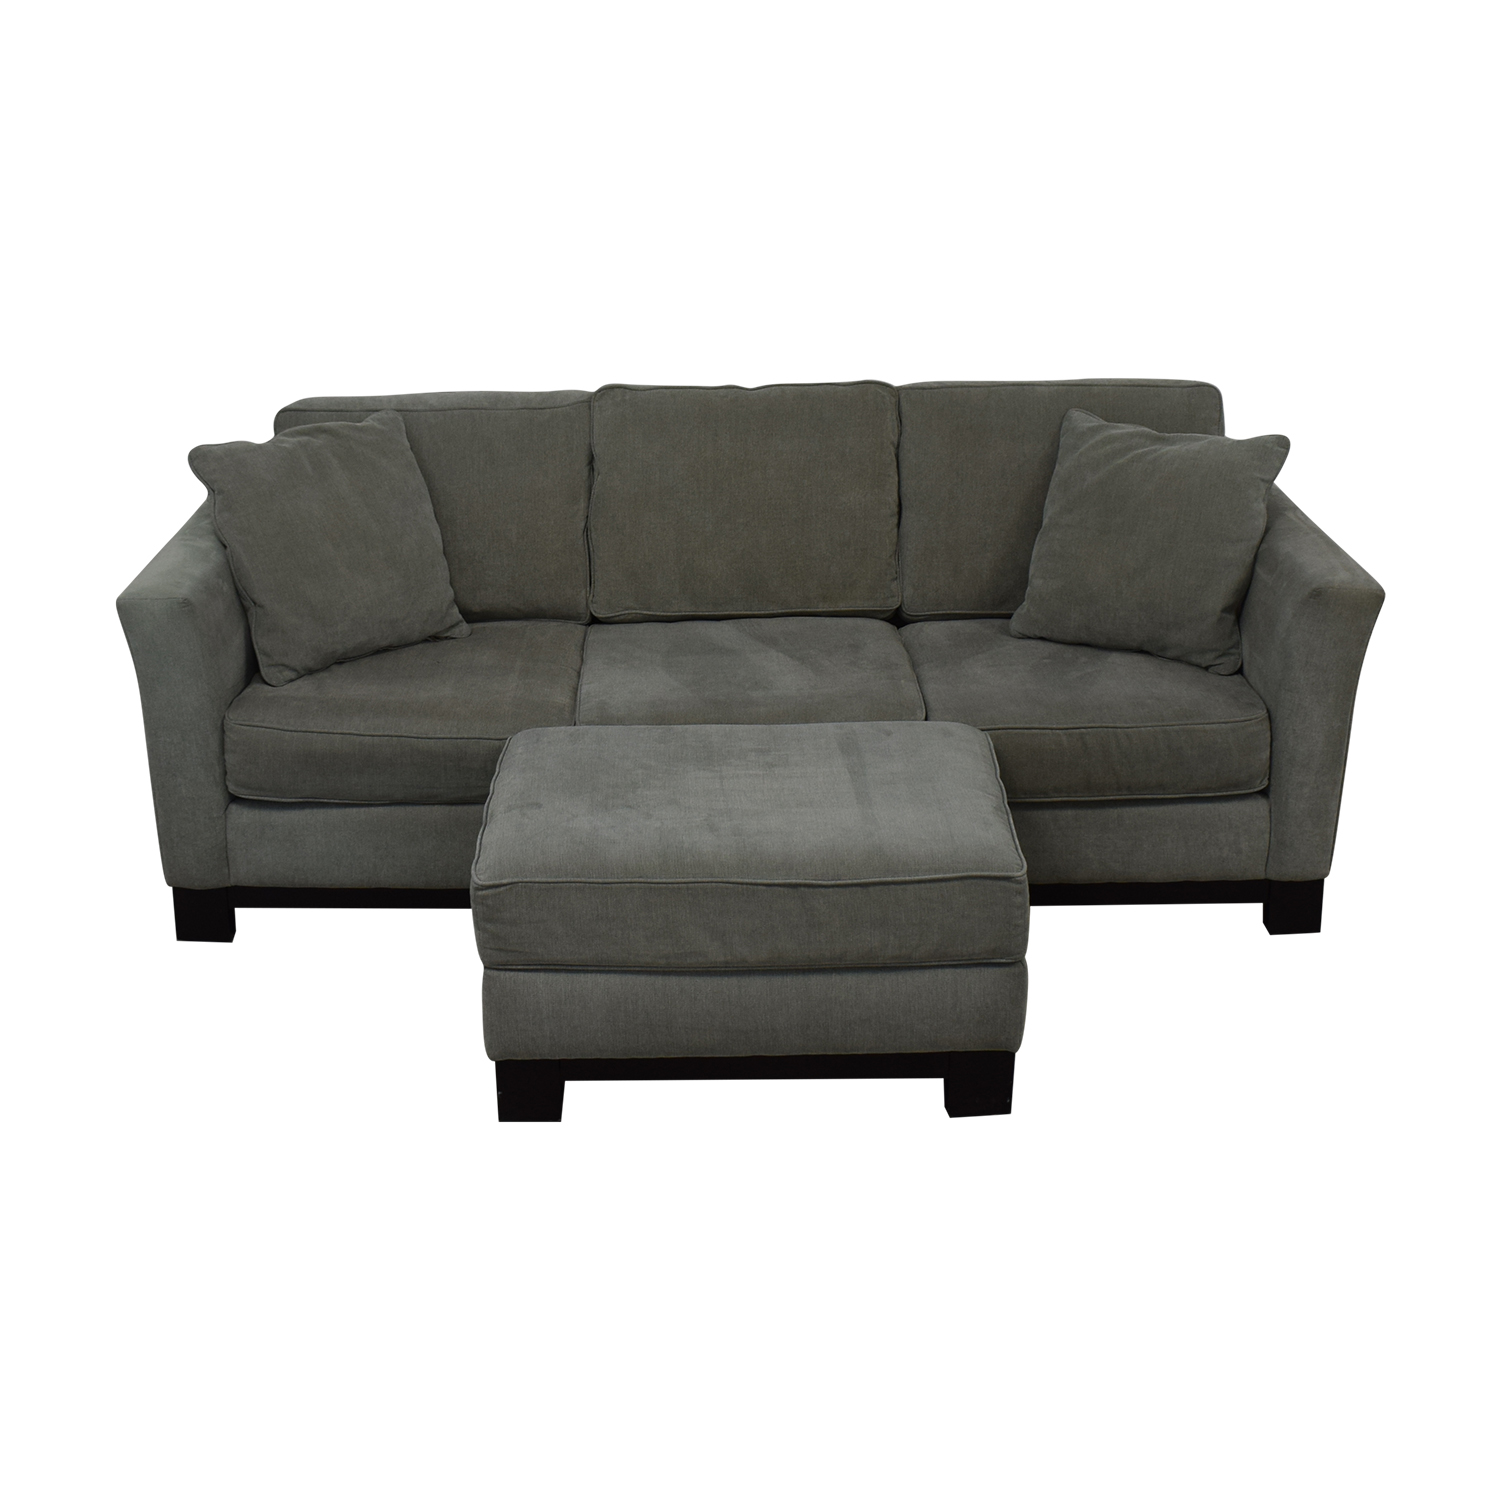 shop Macy's Macy's Modern Three Cushion Sofa And Ottoman online